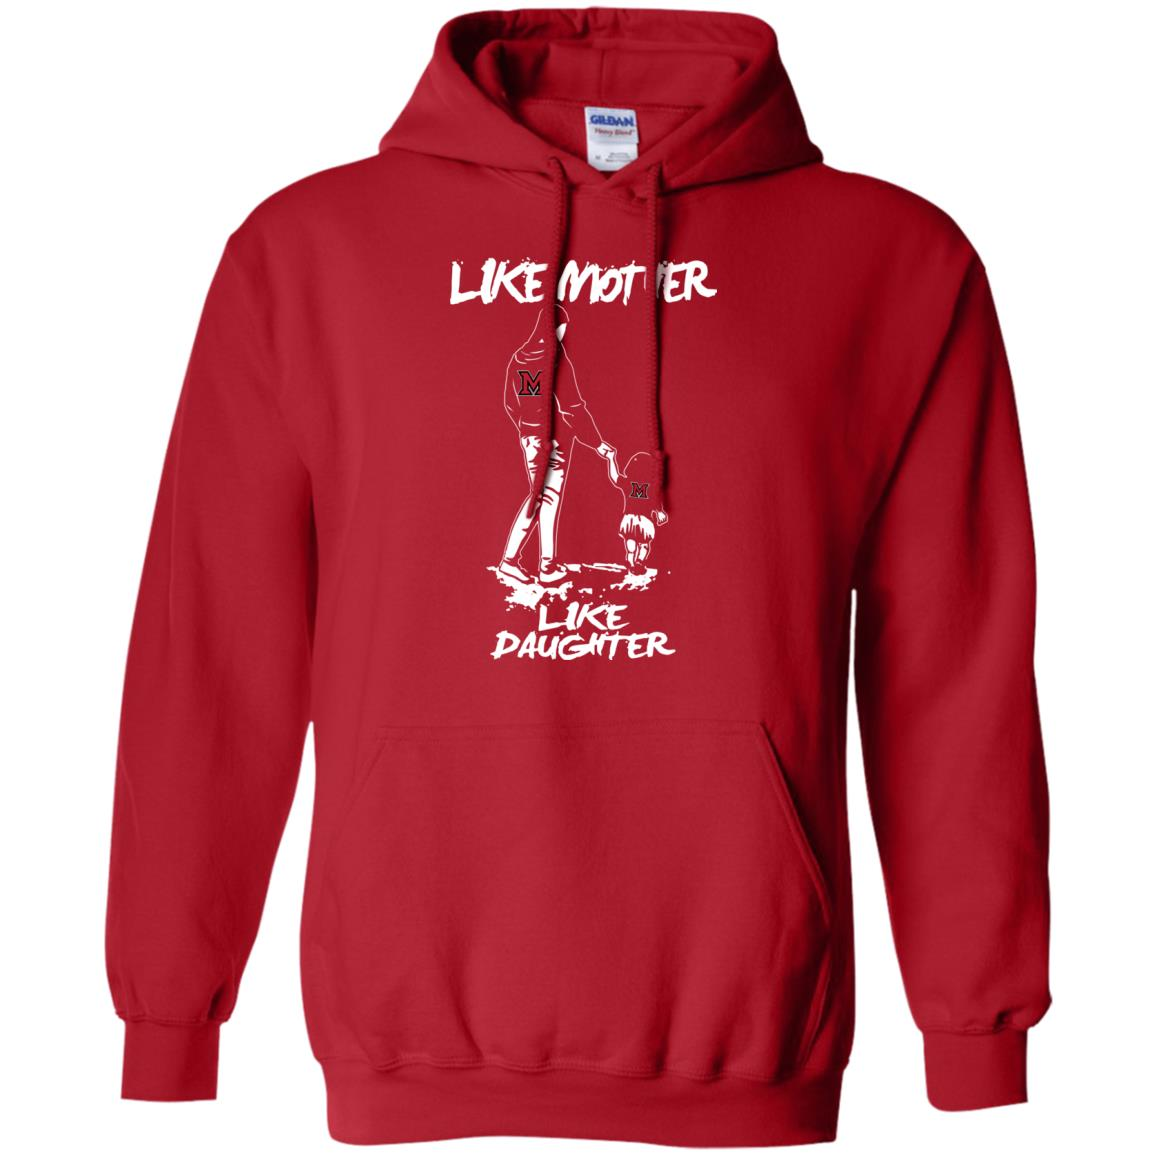 Like Mother Like Daughter Miami RedHawks T Shirts